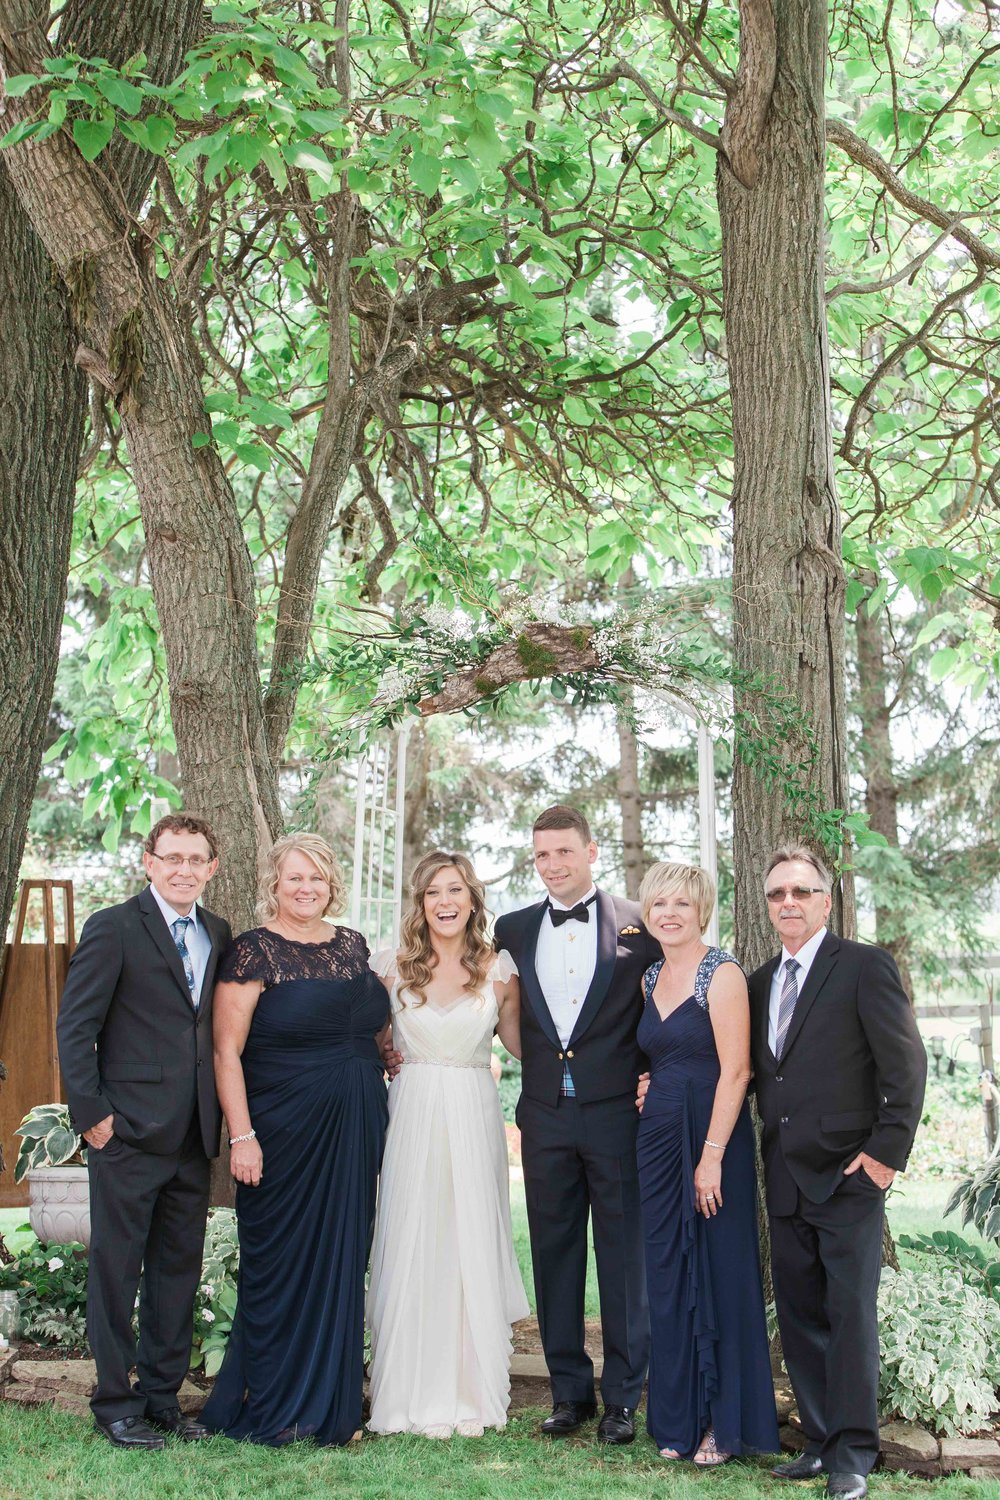 Family photos at intimate Ontario wedding